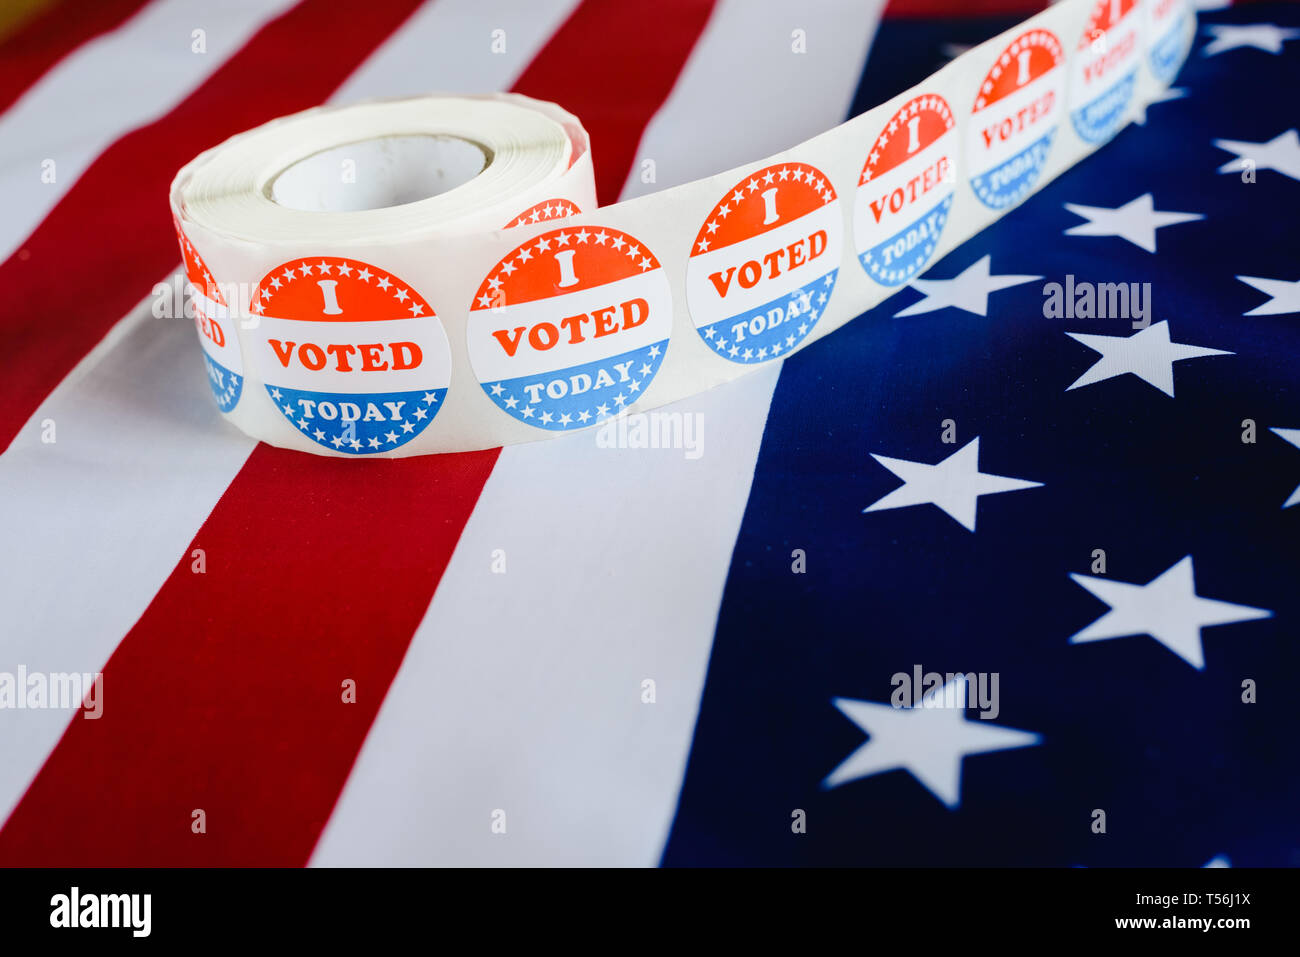 I voted today sticker, typical of US elections on American flag. Stock Photo